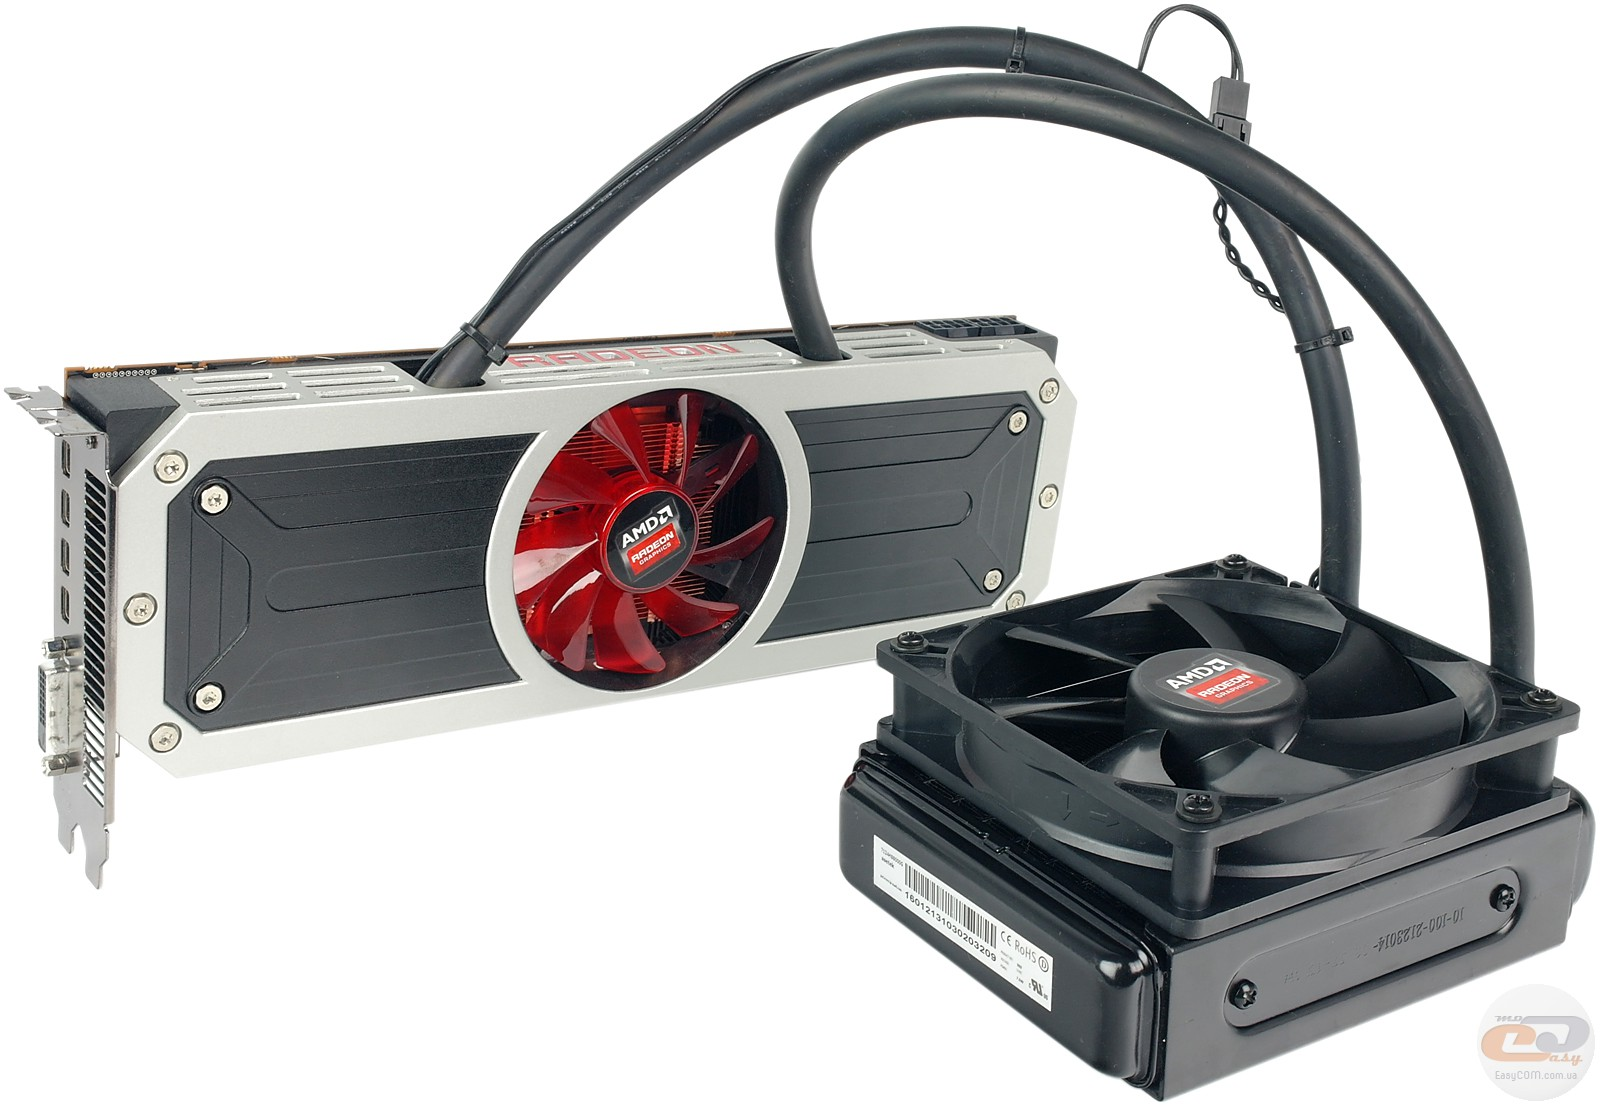 AMD Radeon R9 295X2 graphics card: review and testing. GECID.com